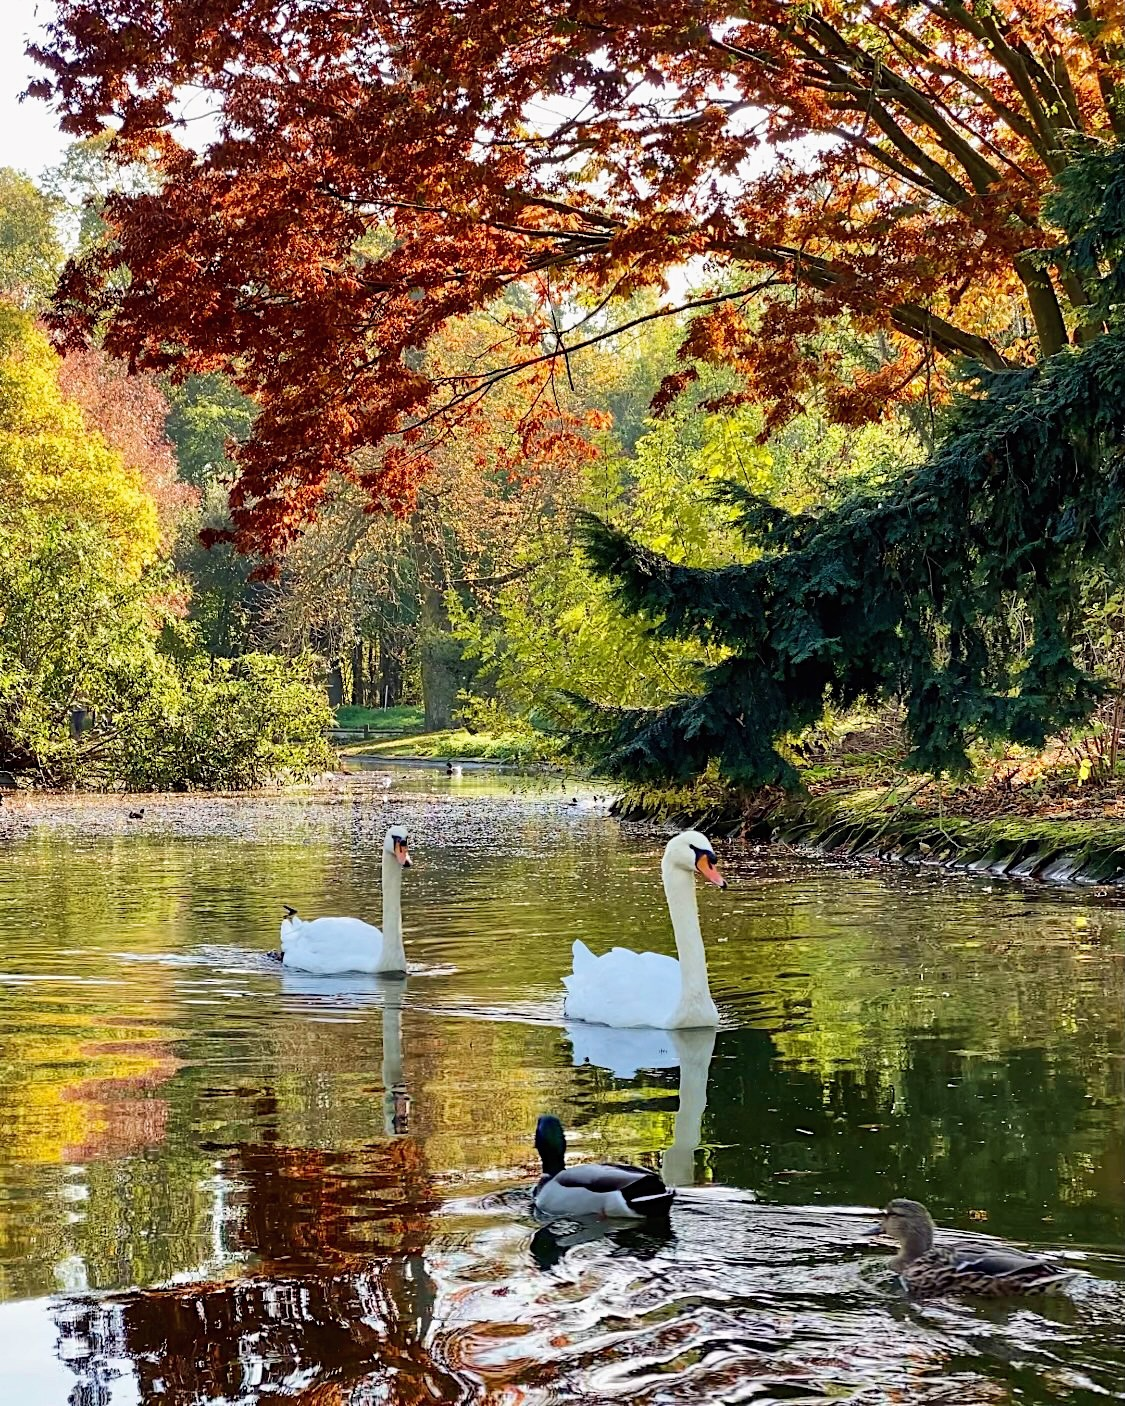 Swans in Bois de Boulogne. This week features a Van Gogh in Arles Virtual Visit